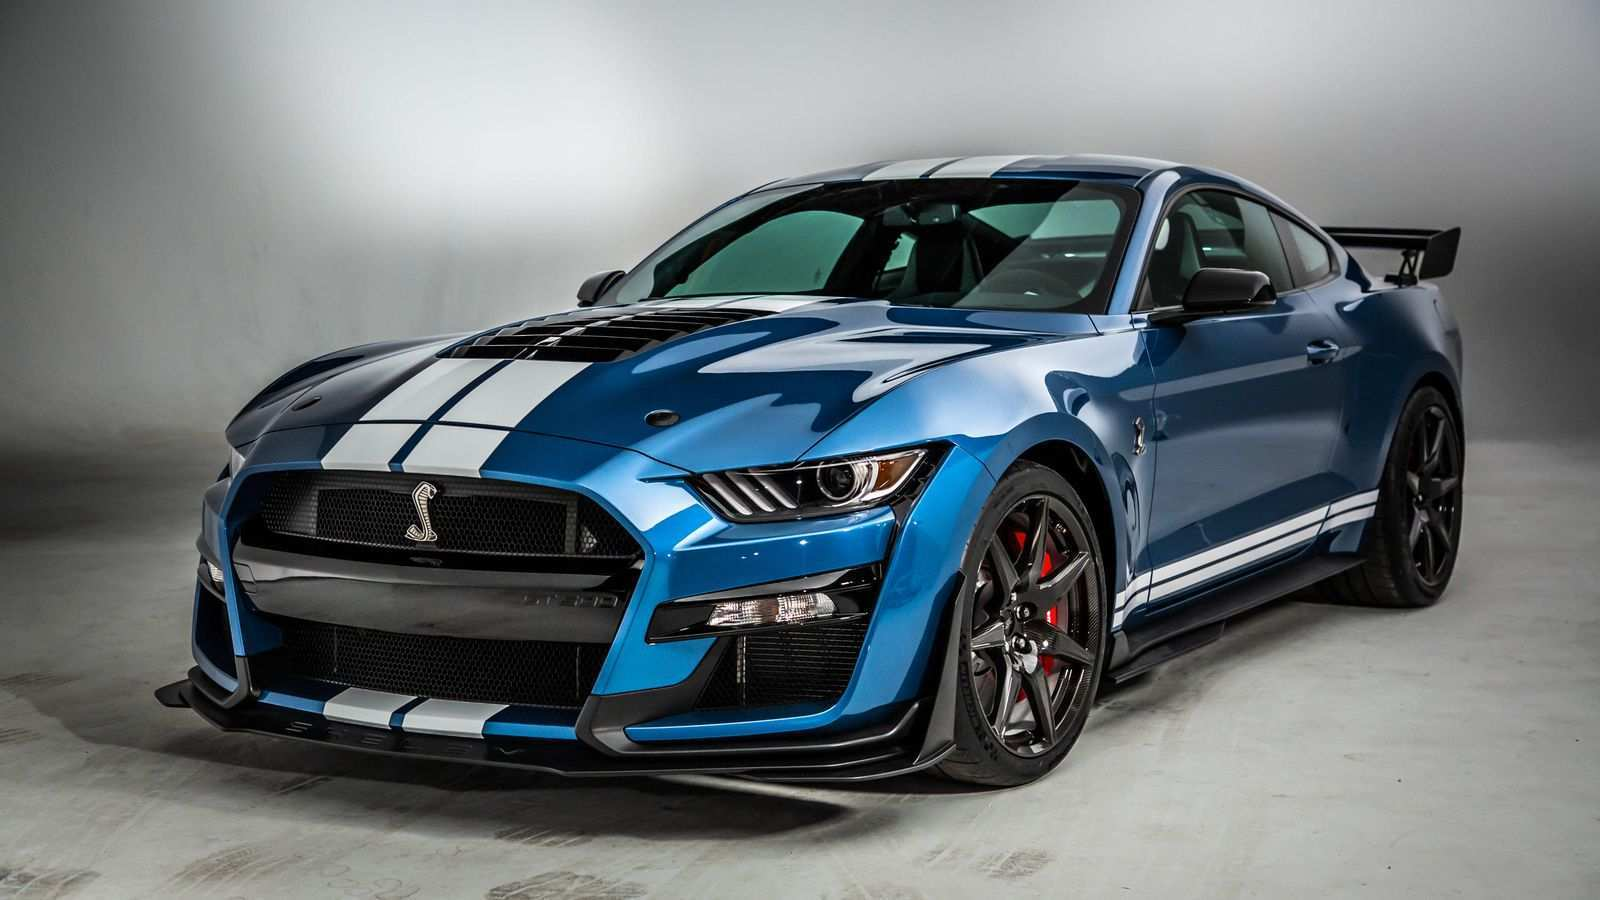 87 The Best 2020 Mustang Gt500 Review